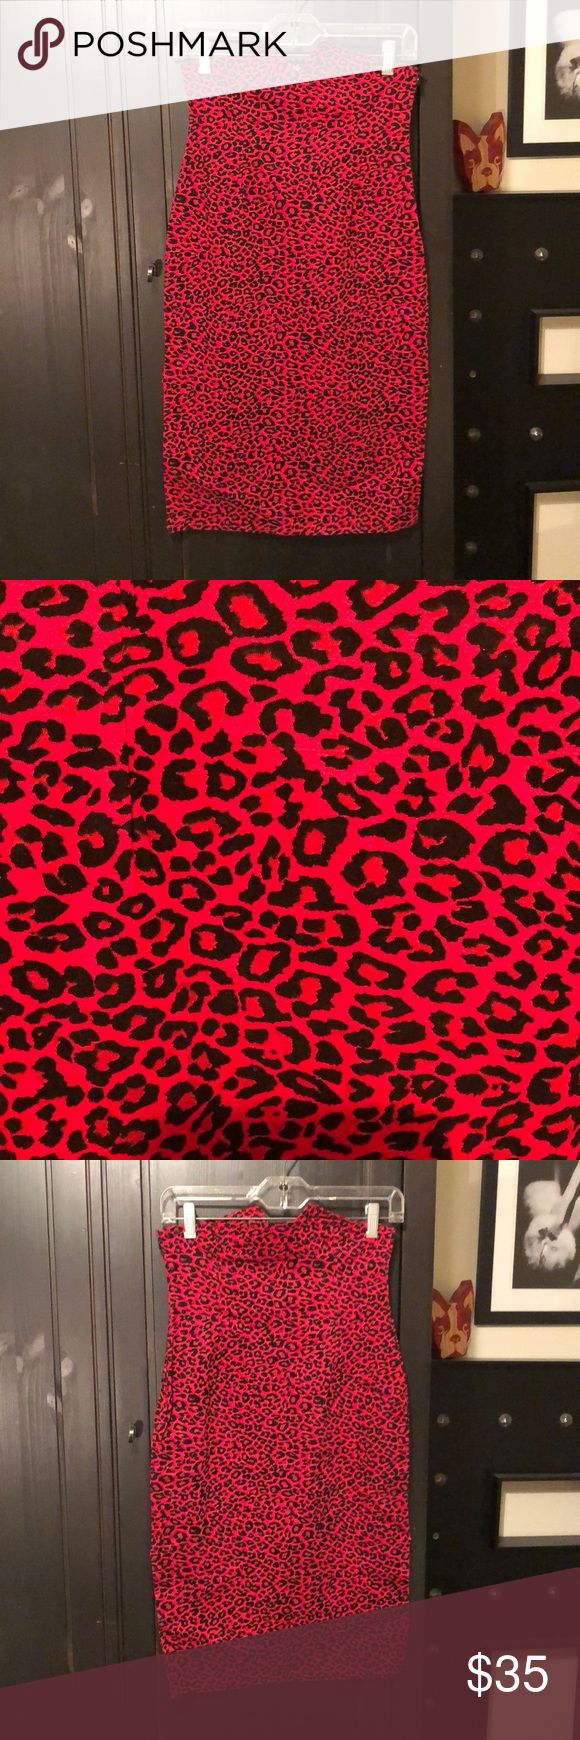 Collectif Red Leopard Pinup Pencil Skirt 🌹 Collectif Red Leopard Pinup High Waisted Pencil Skirt . Velvet Flocked. UK 🇬🇧 Size 10. 98% Cotton 2% Elastine. Like New! 🌹 Collectif Skirts Pencil